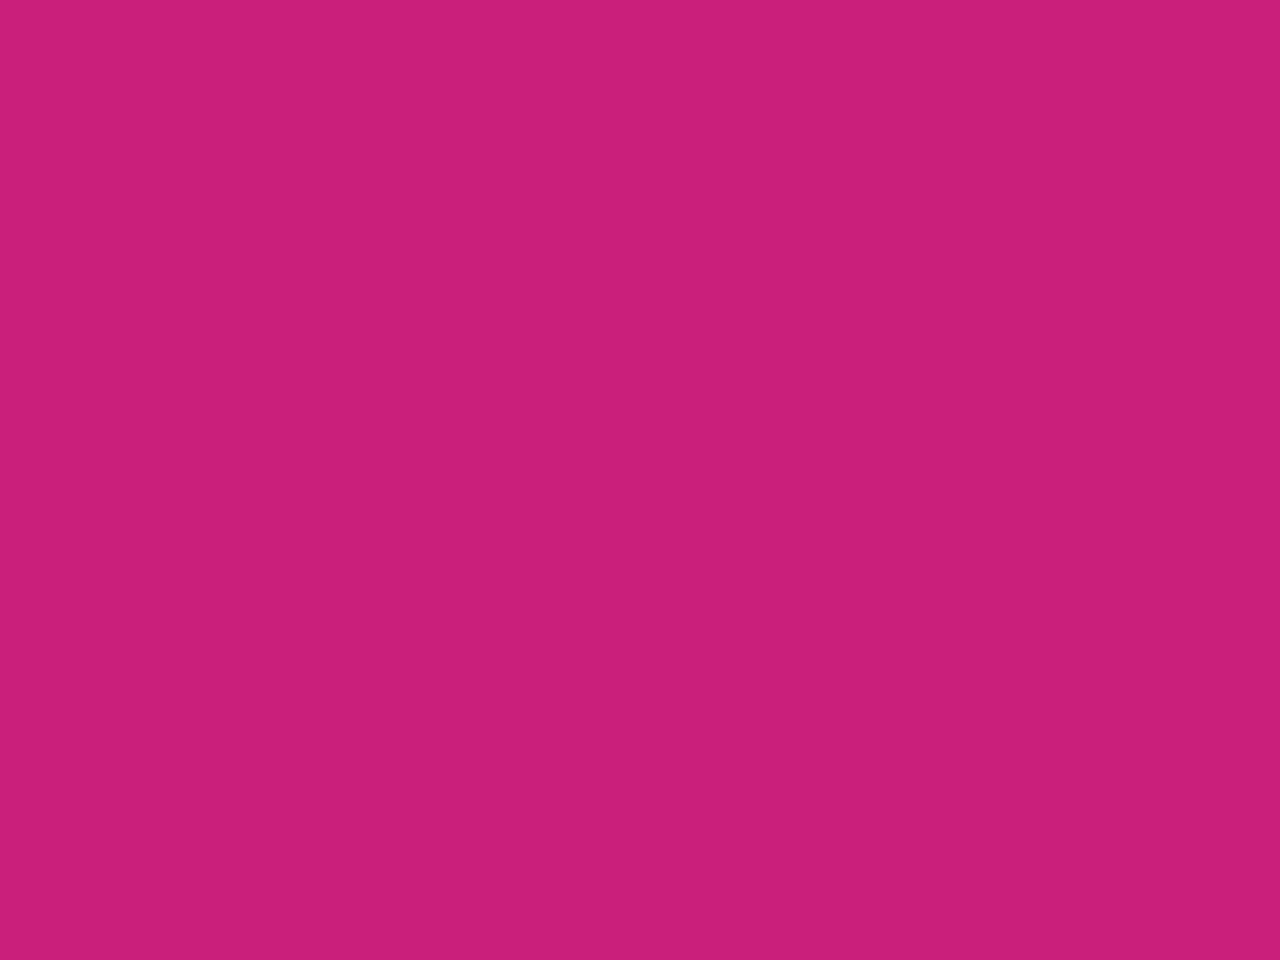 1280x960 Magenta Dye Solid Color Background